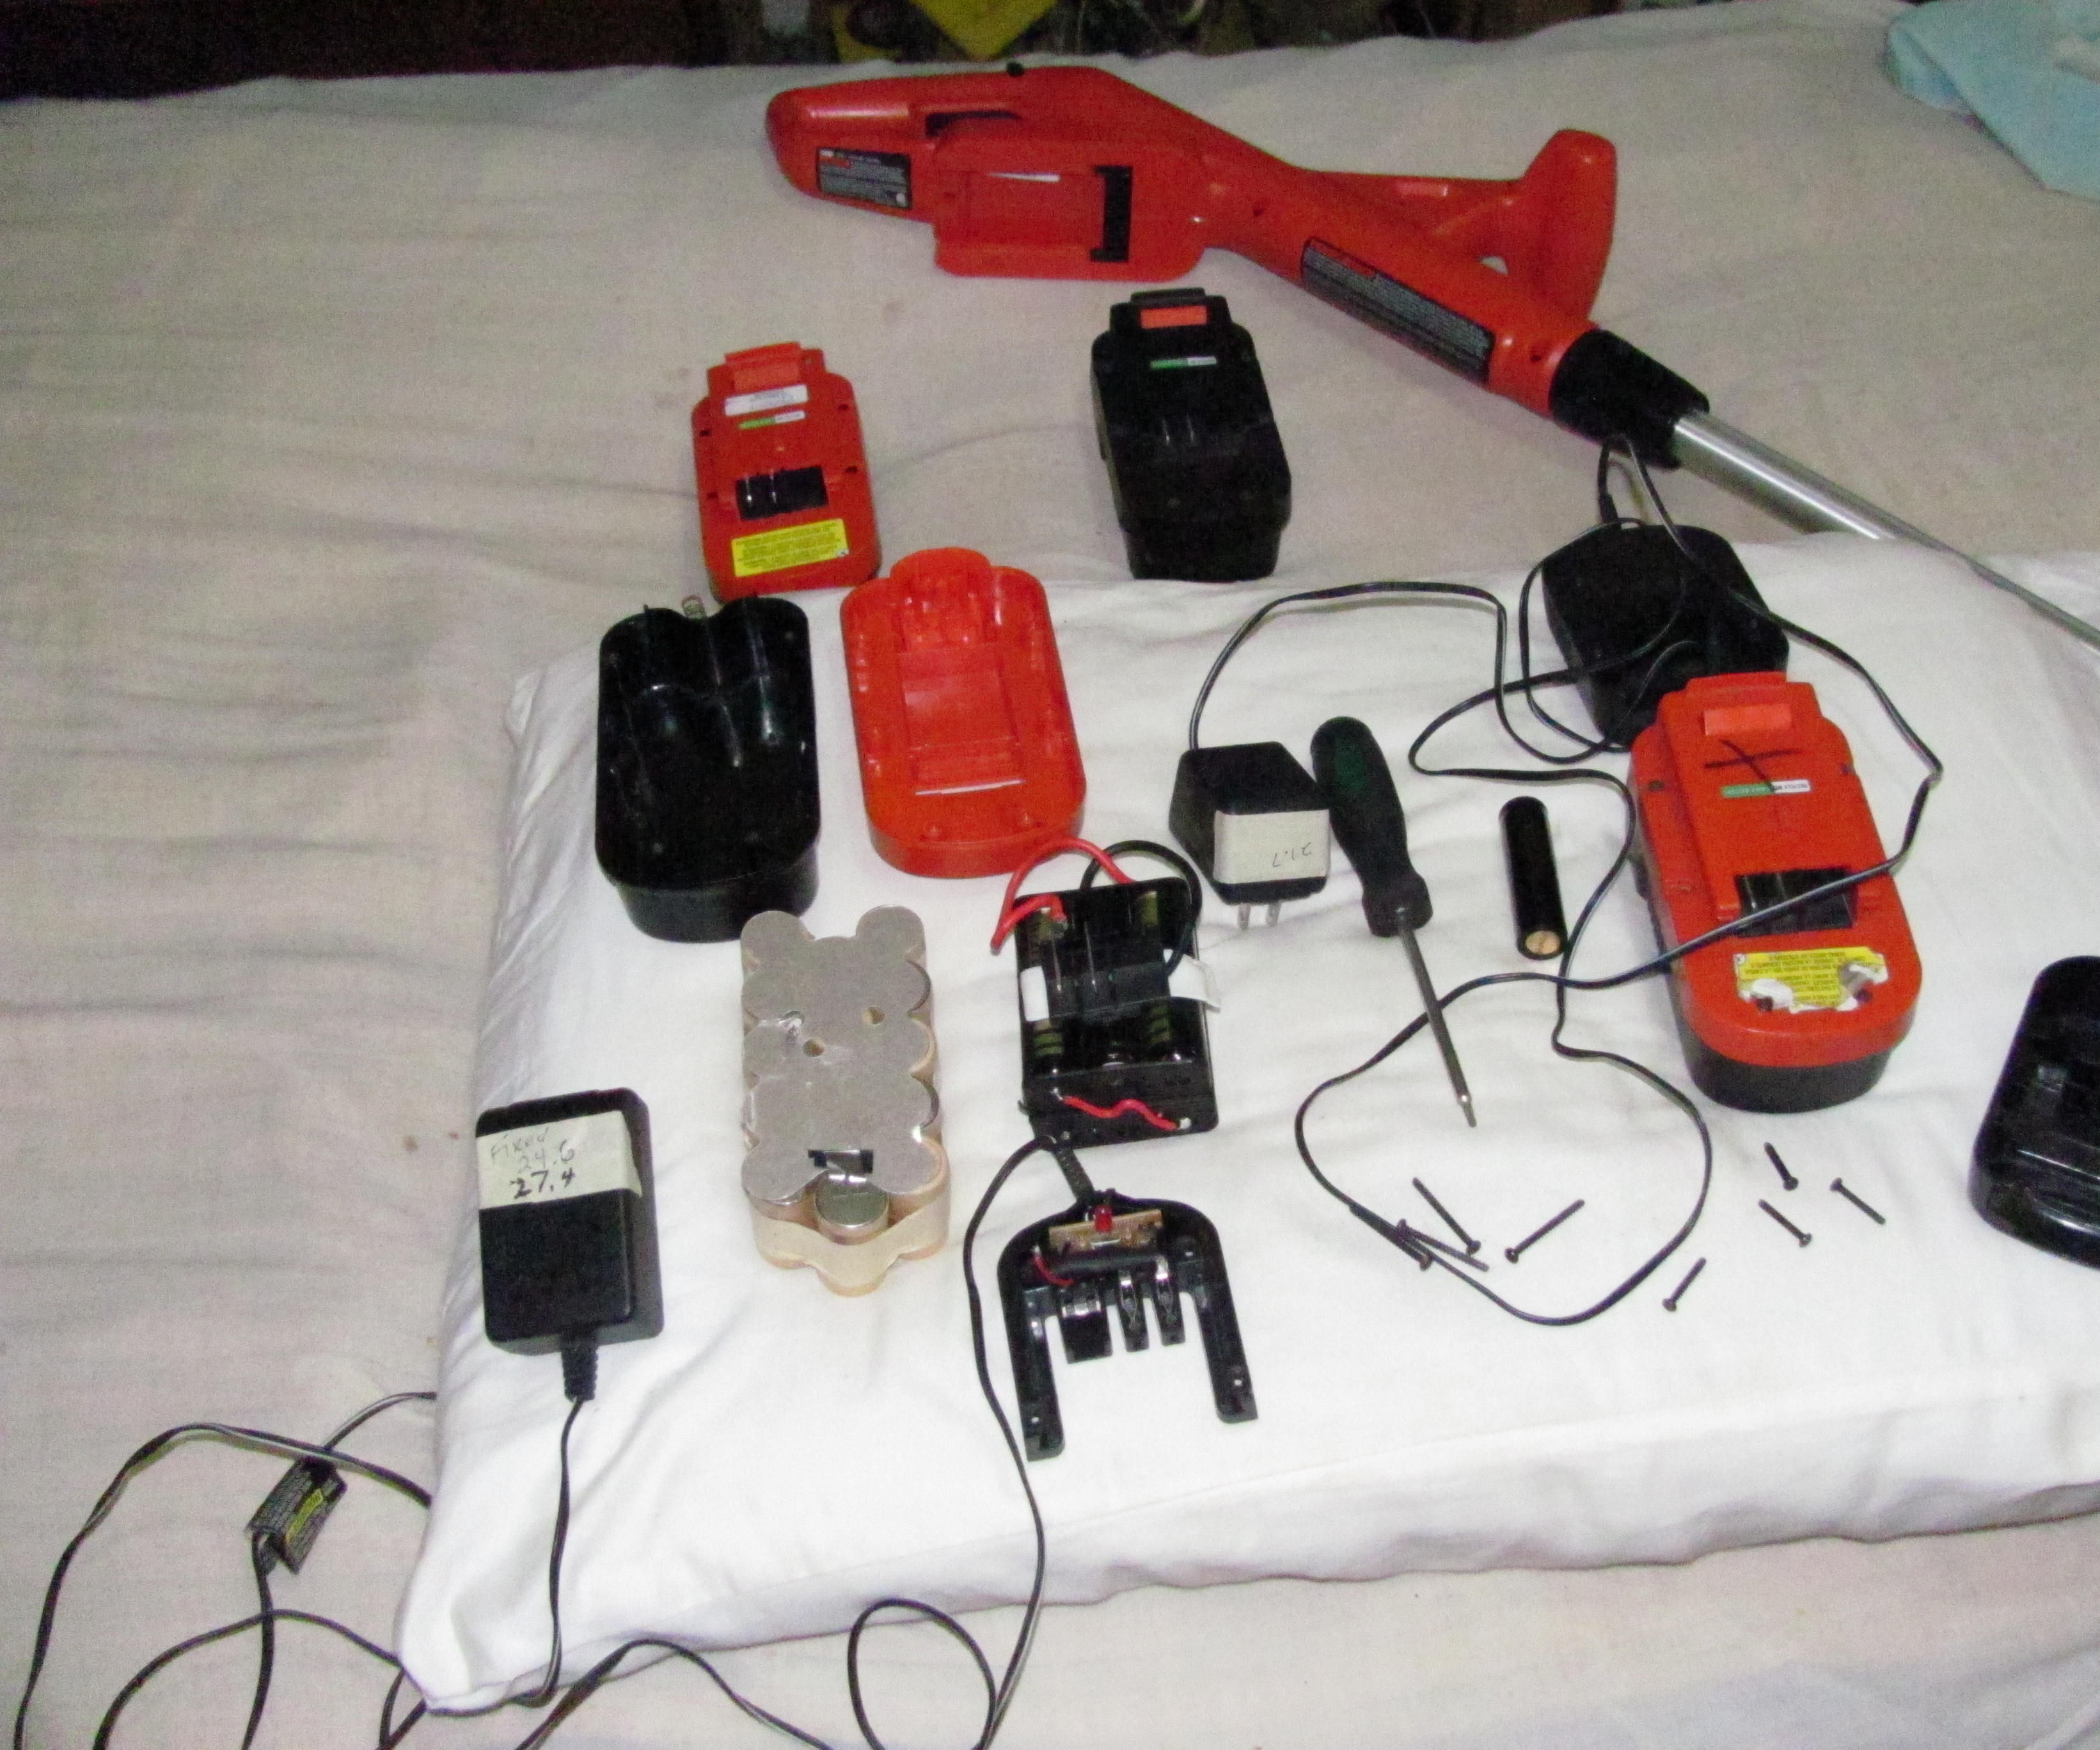 Lithium upgrade to 18v Black and Decker Single Source battery pack